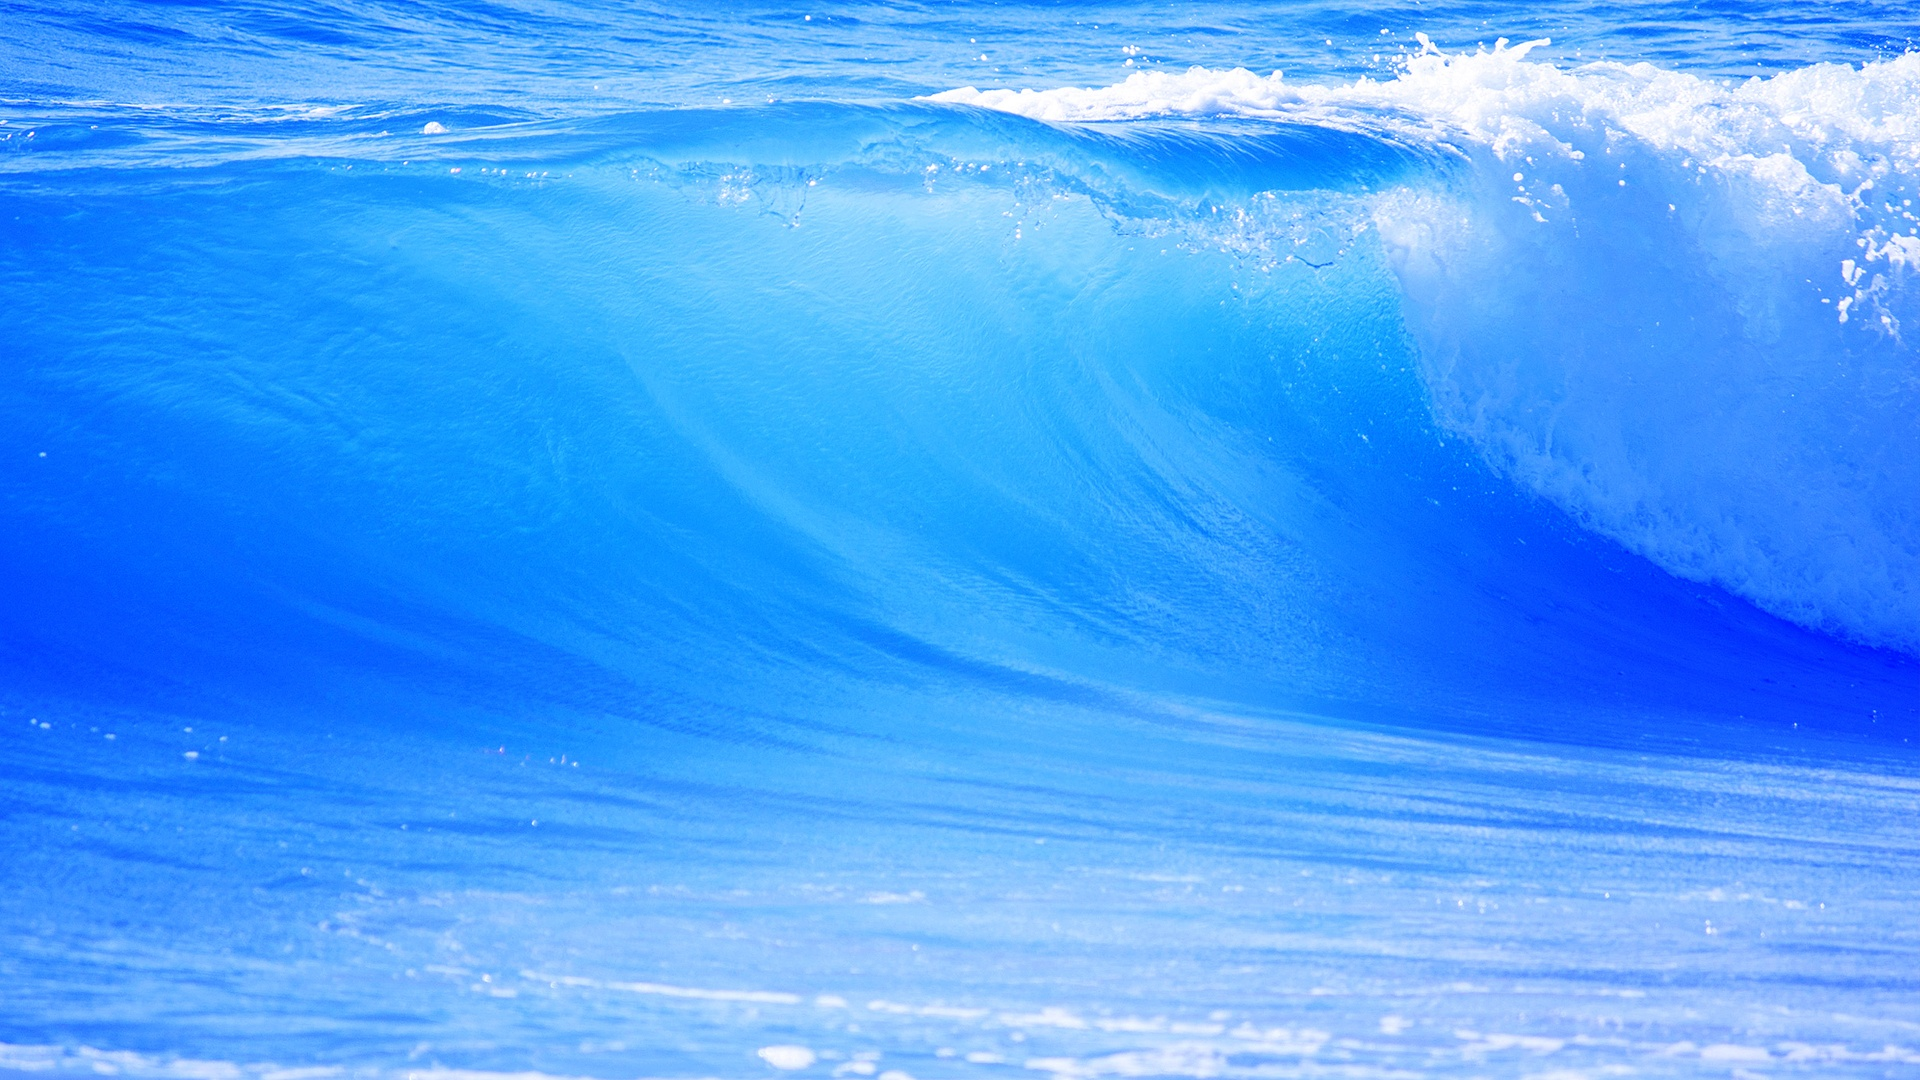 Ocean Blue Waves 1920 x 1080 Download Close 1920x1080